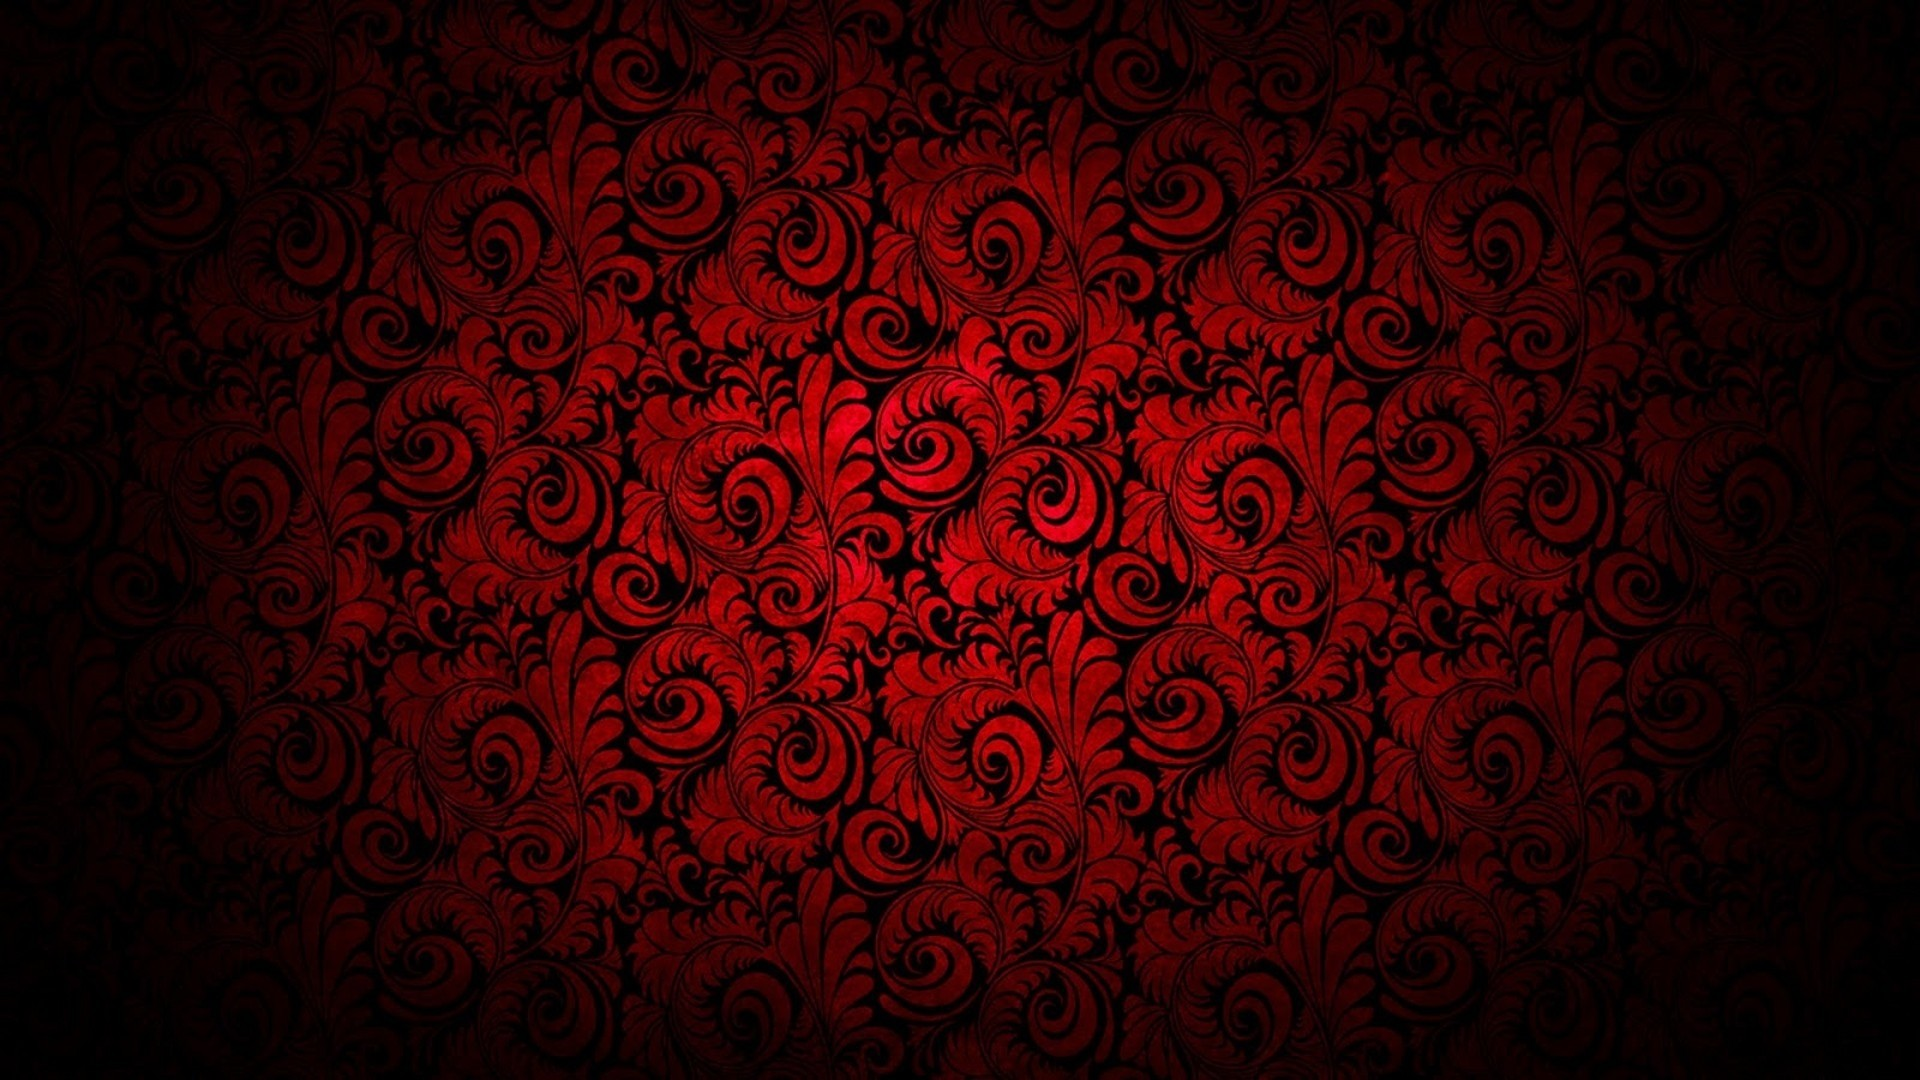 HD Wallpaper Freebie Quality Free Download Wallpapers #6050 · Red And Black  …